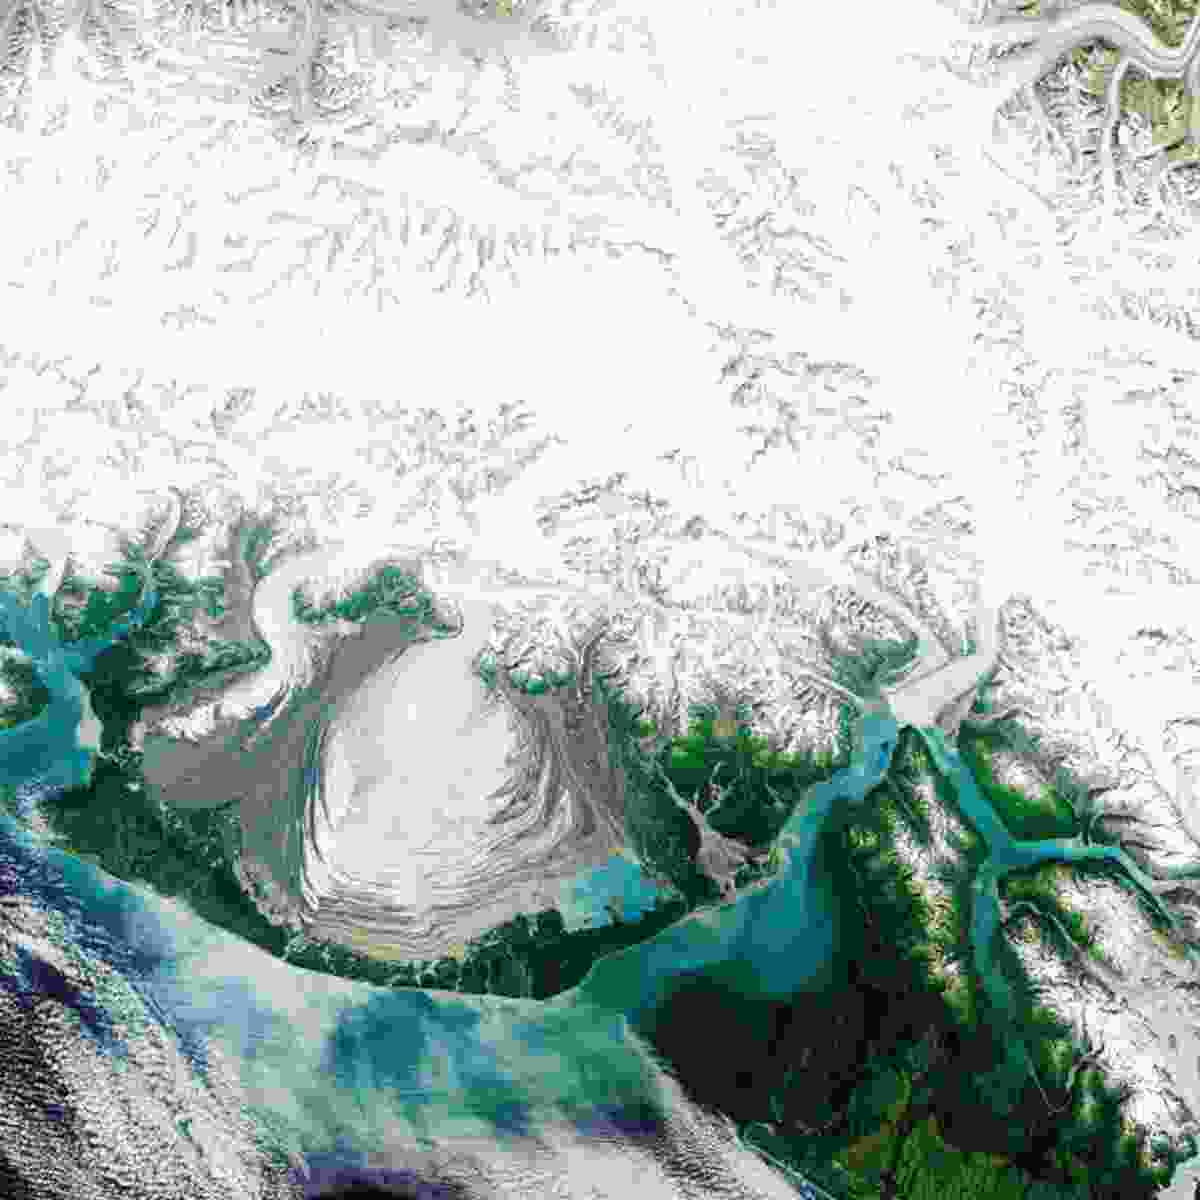 Malaspina Glacier, Alaska, USA (NASA Goddard Space Flight Centre and U.S. Geological Survey)